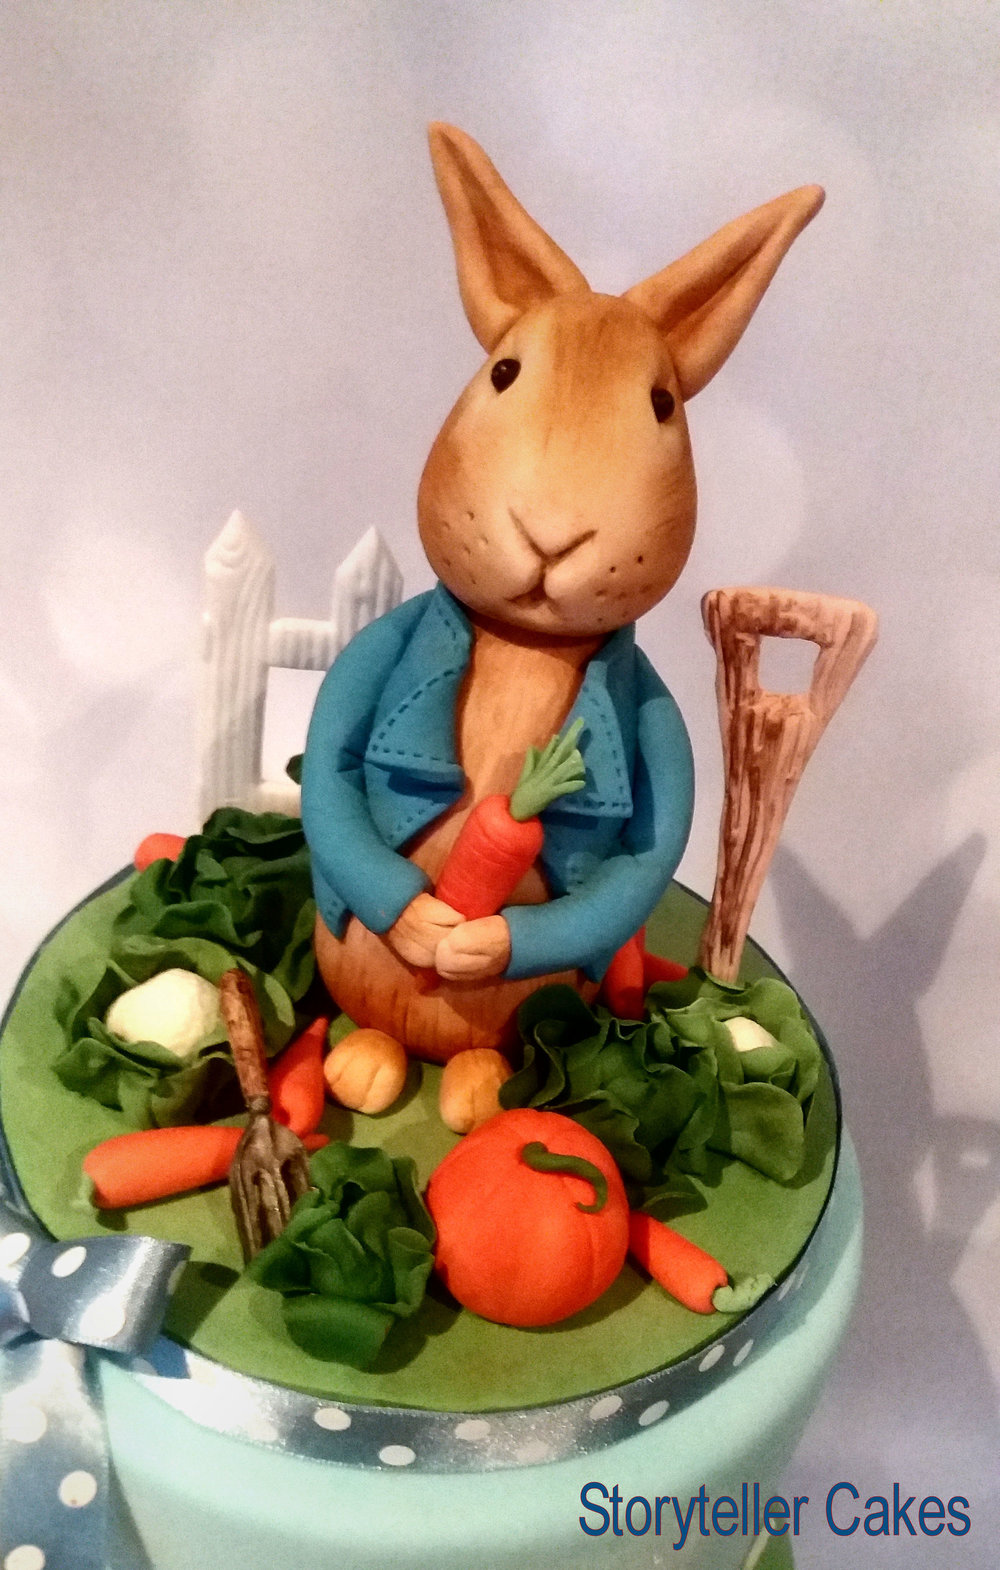 peter rabbit cake 2.jpg